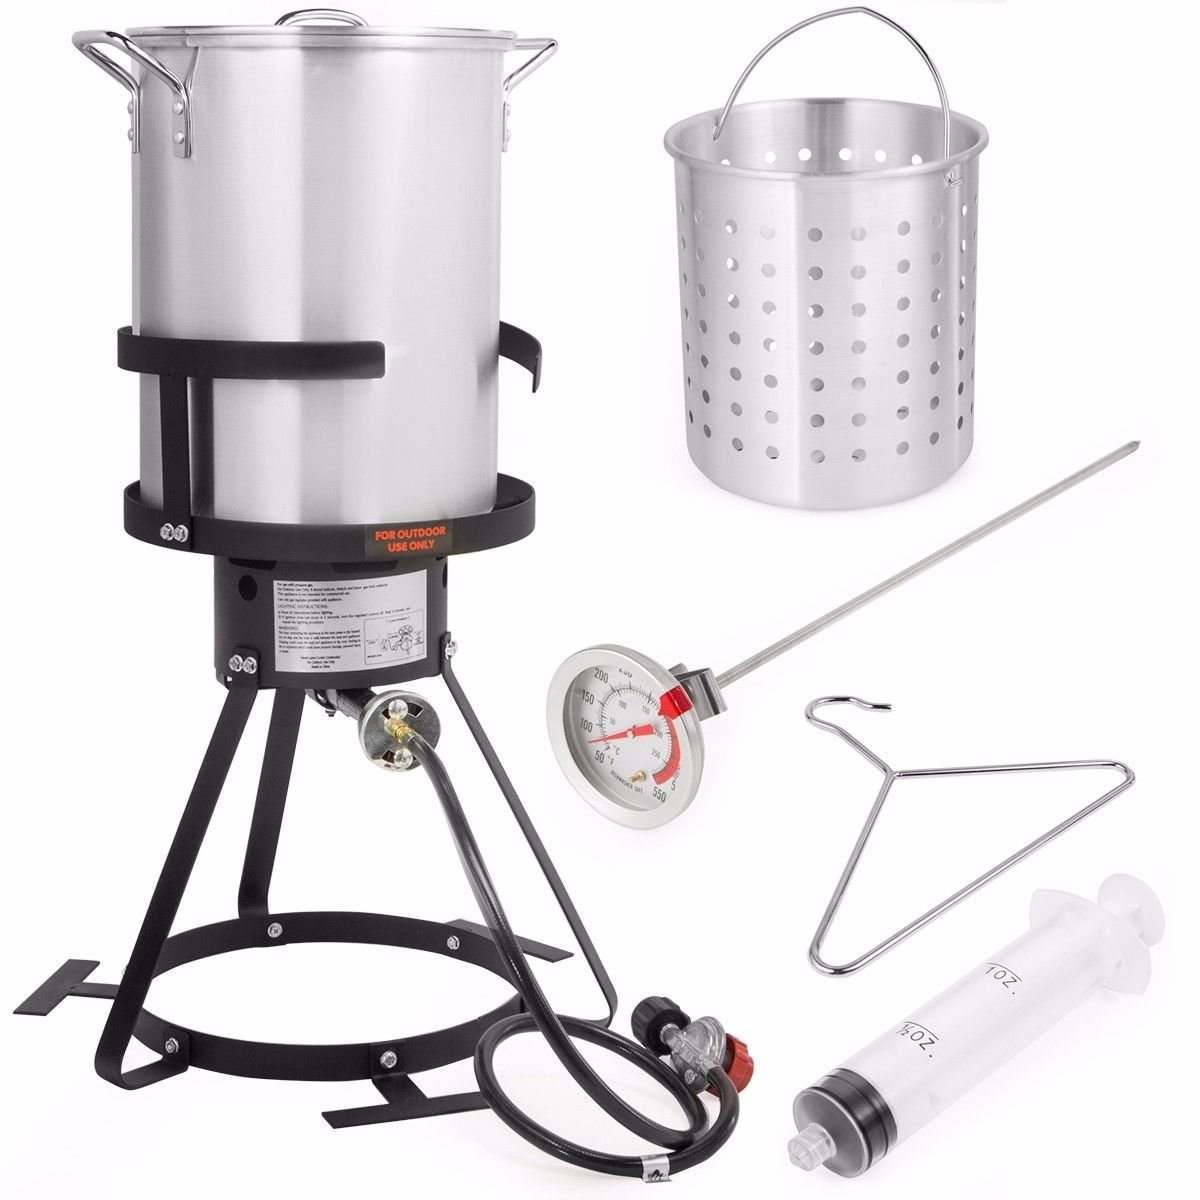 Stark Deluxe 30 QT Aluminum Turkey Deep Fryer Pot Boiling Lid and Gas Stove Burner Stand Injector Thermometer CSA 55,000 BTU by Stark USA